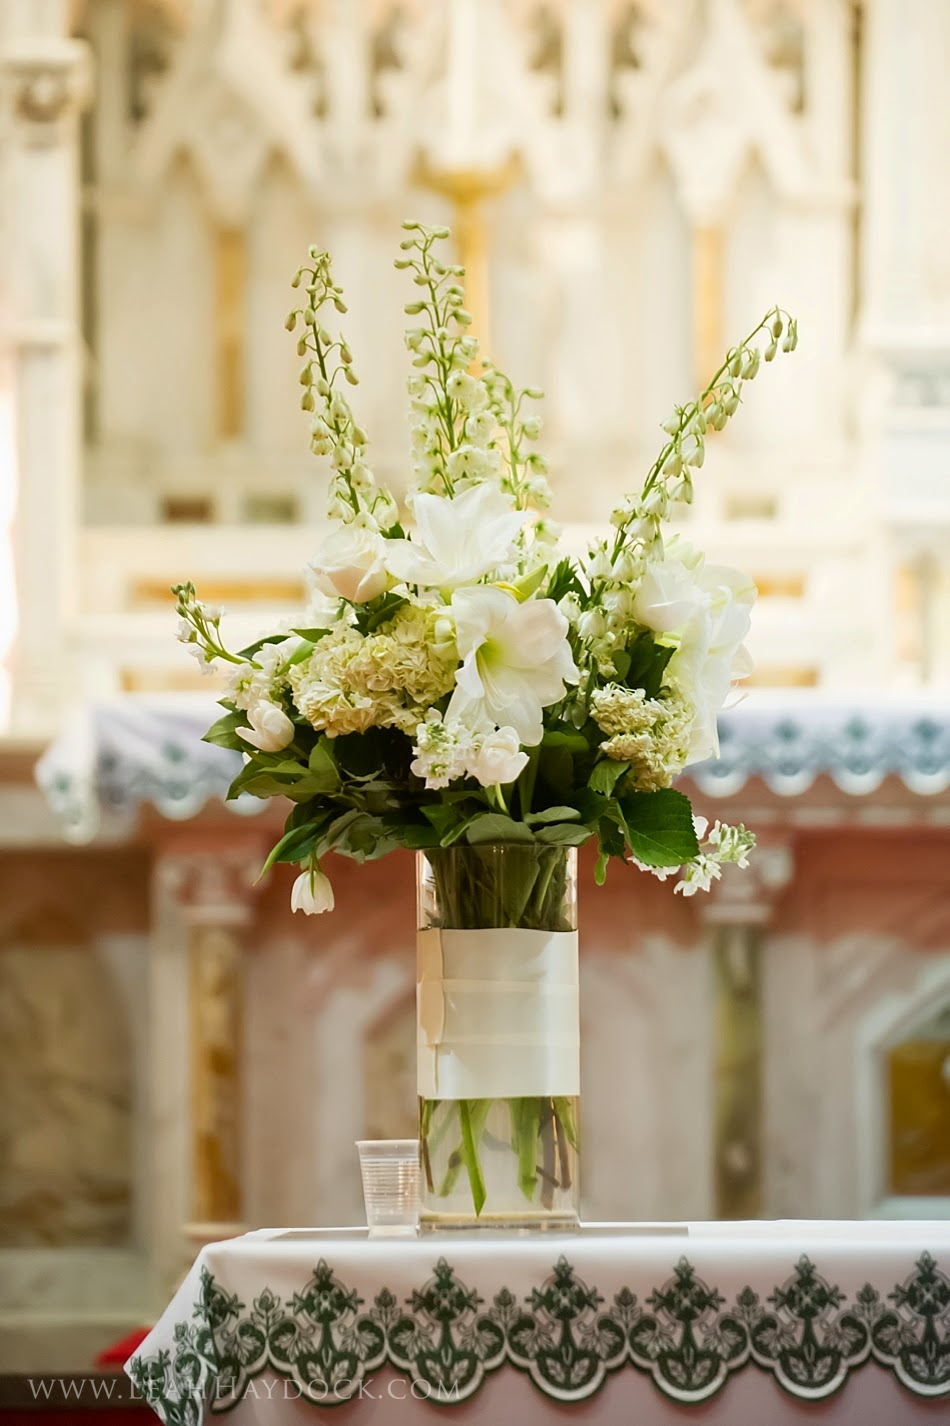 les fleurs : leah haydock photography : boston harbor hotel : winter wedding : white ceremony arrangements in glass cylinders